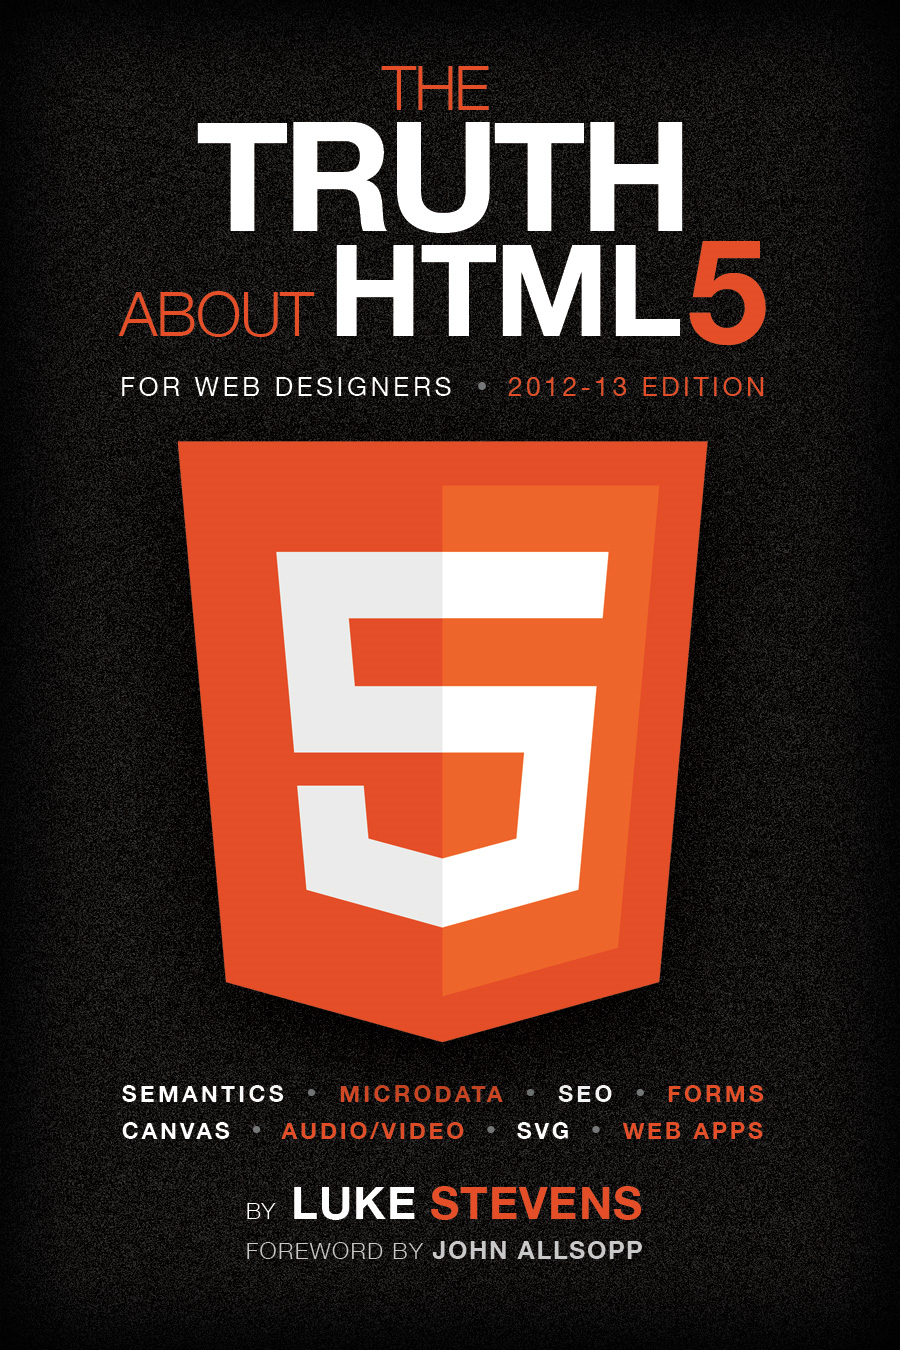 The Truth About HTML5 (For Web Designers)